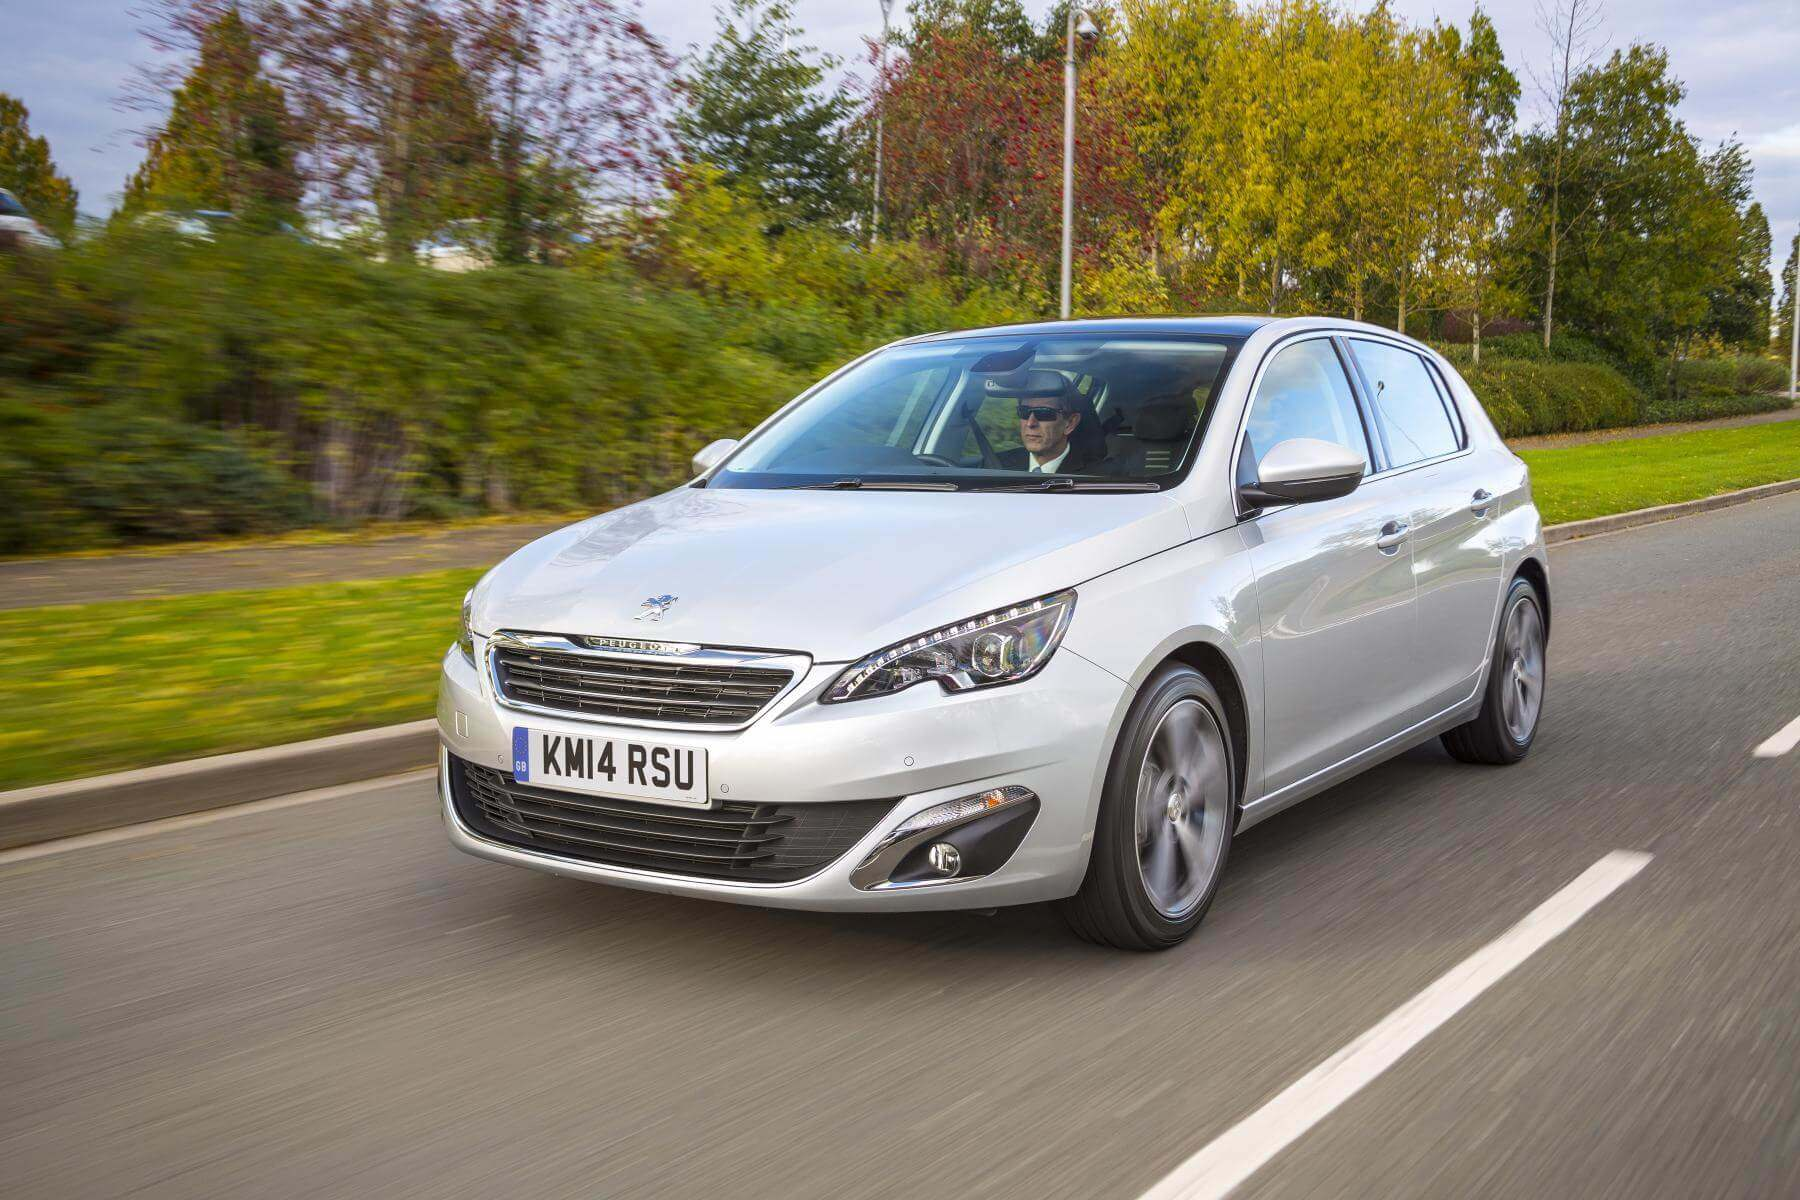 Silver Peugeot 308